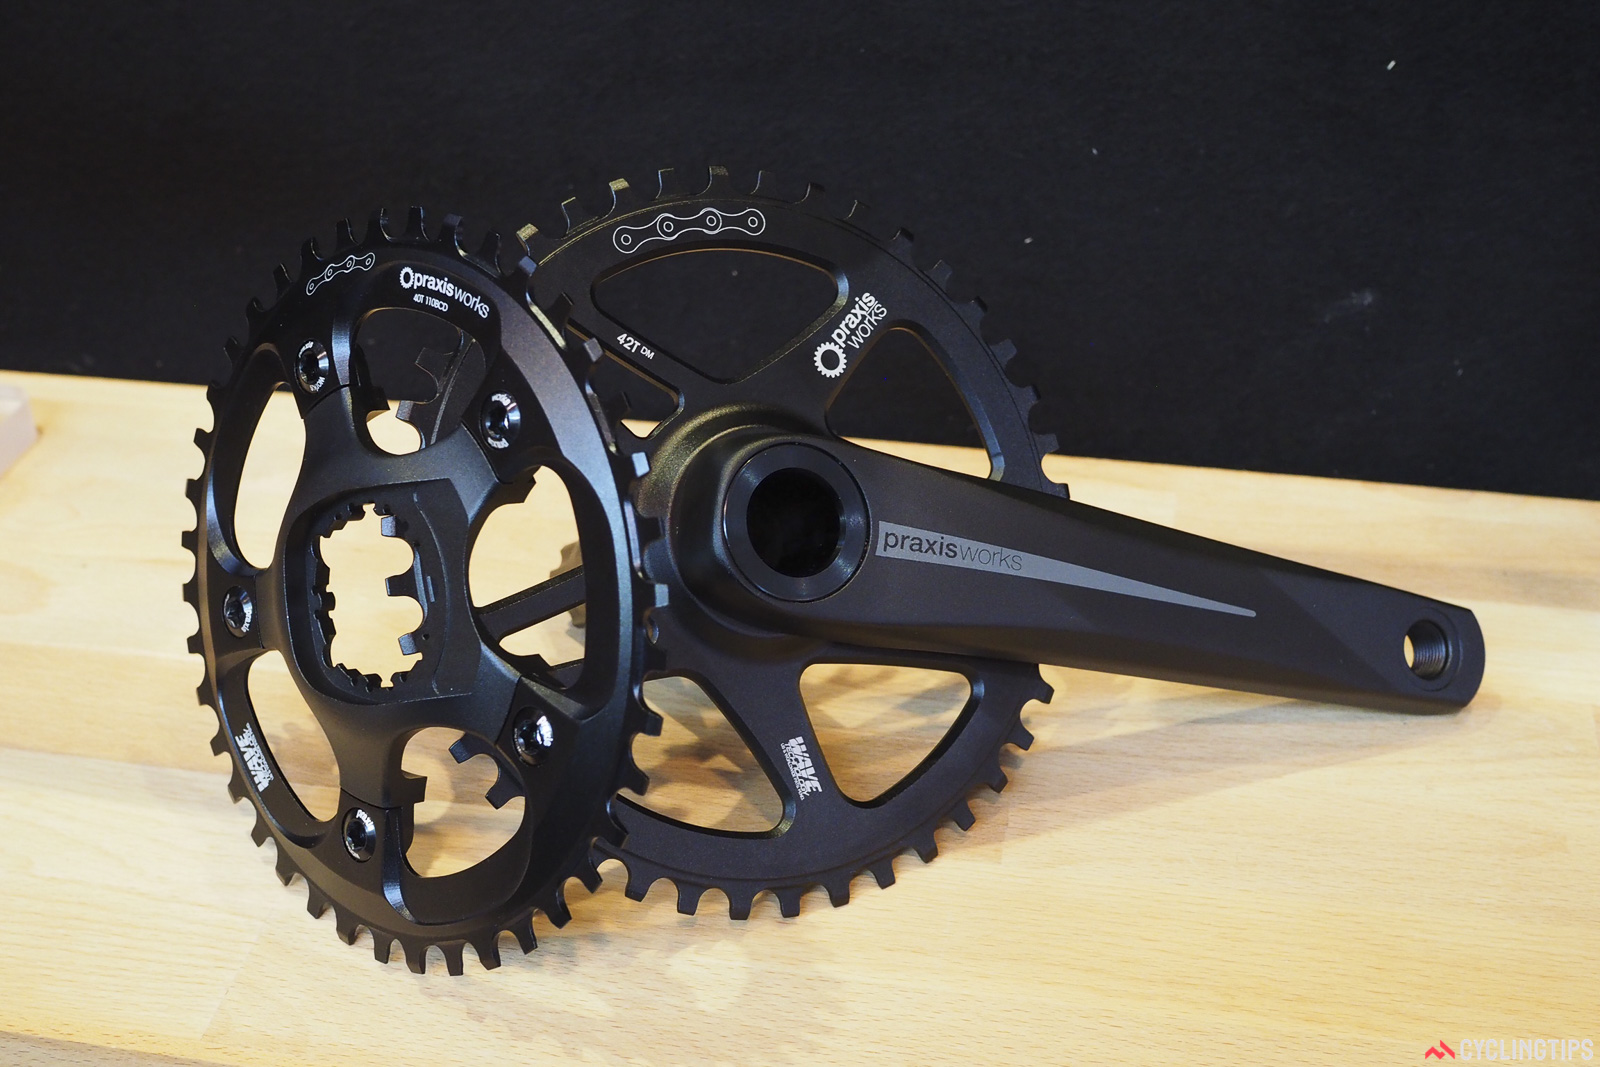 Whereas the original Praxis Zayante crankset used a permanently press-fit spider, the new one is removable, allowing for easy swapping to different drivetrain configurations. Photo: James Huang.